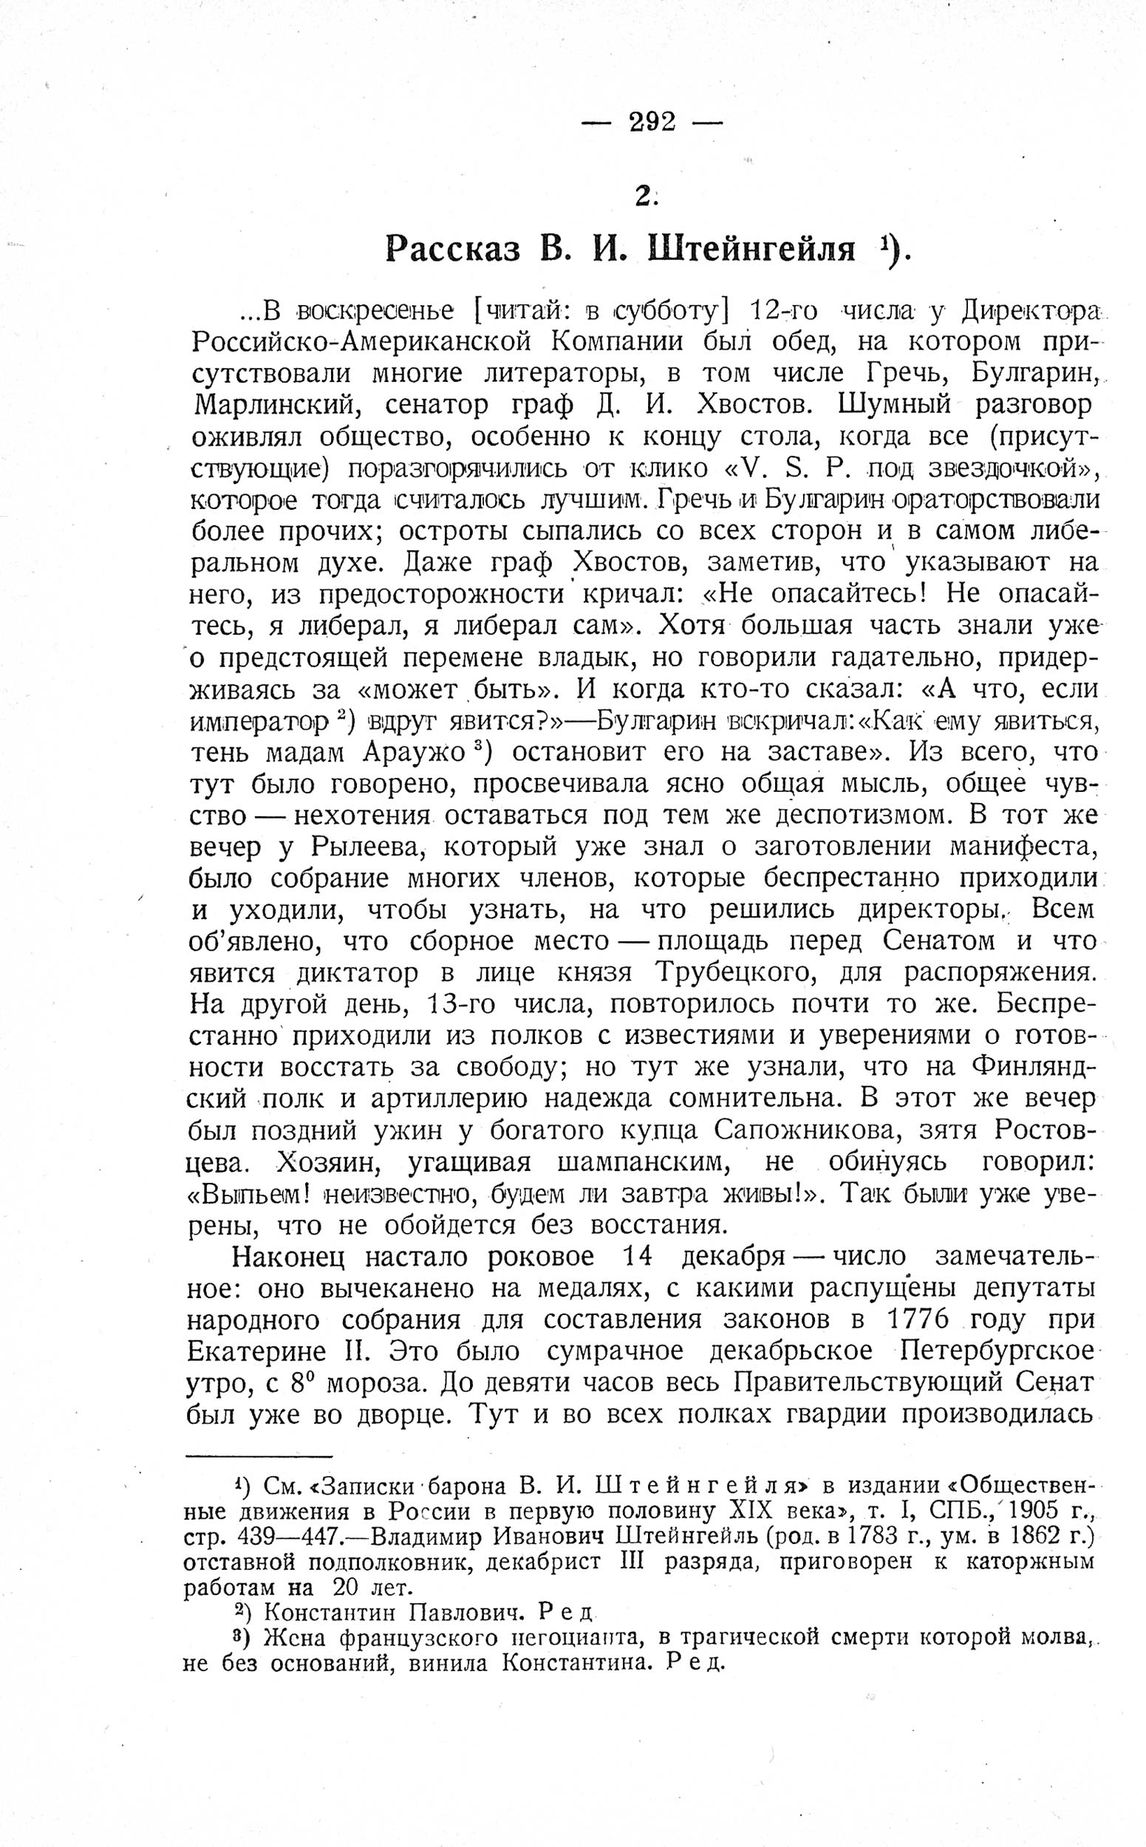 http://elib.shpl.ru/pages/625875/zooms/7